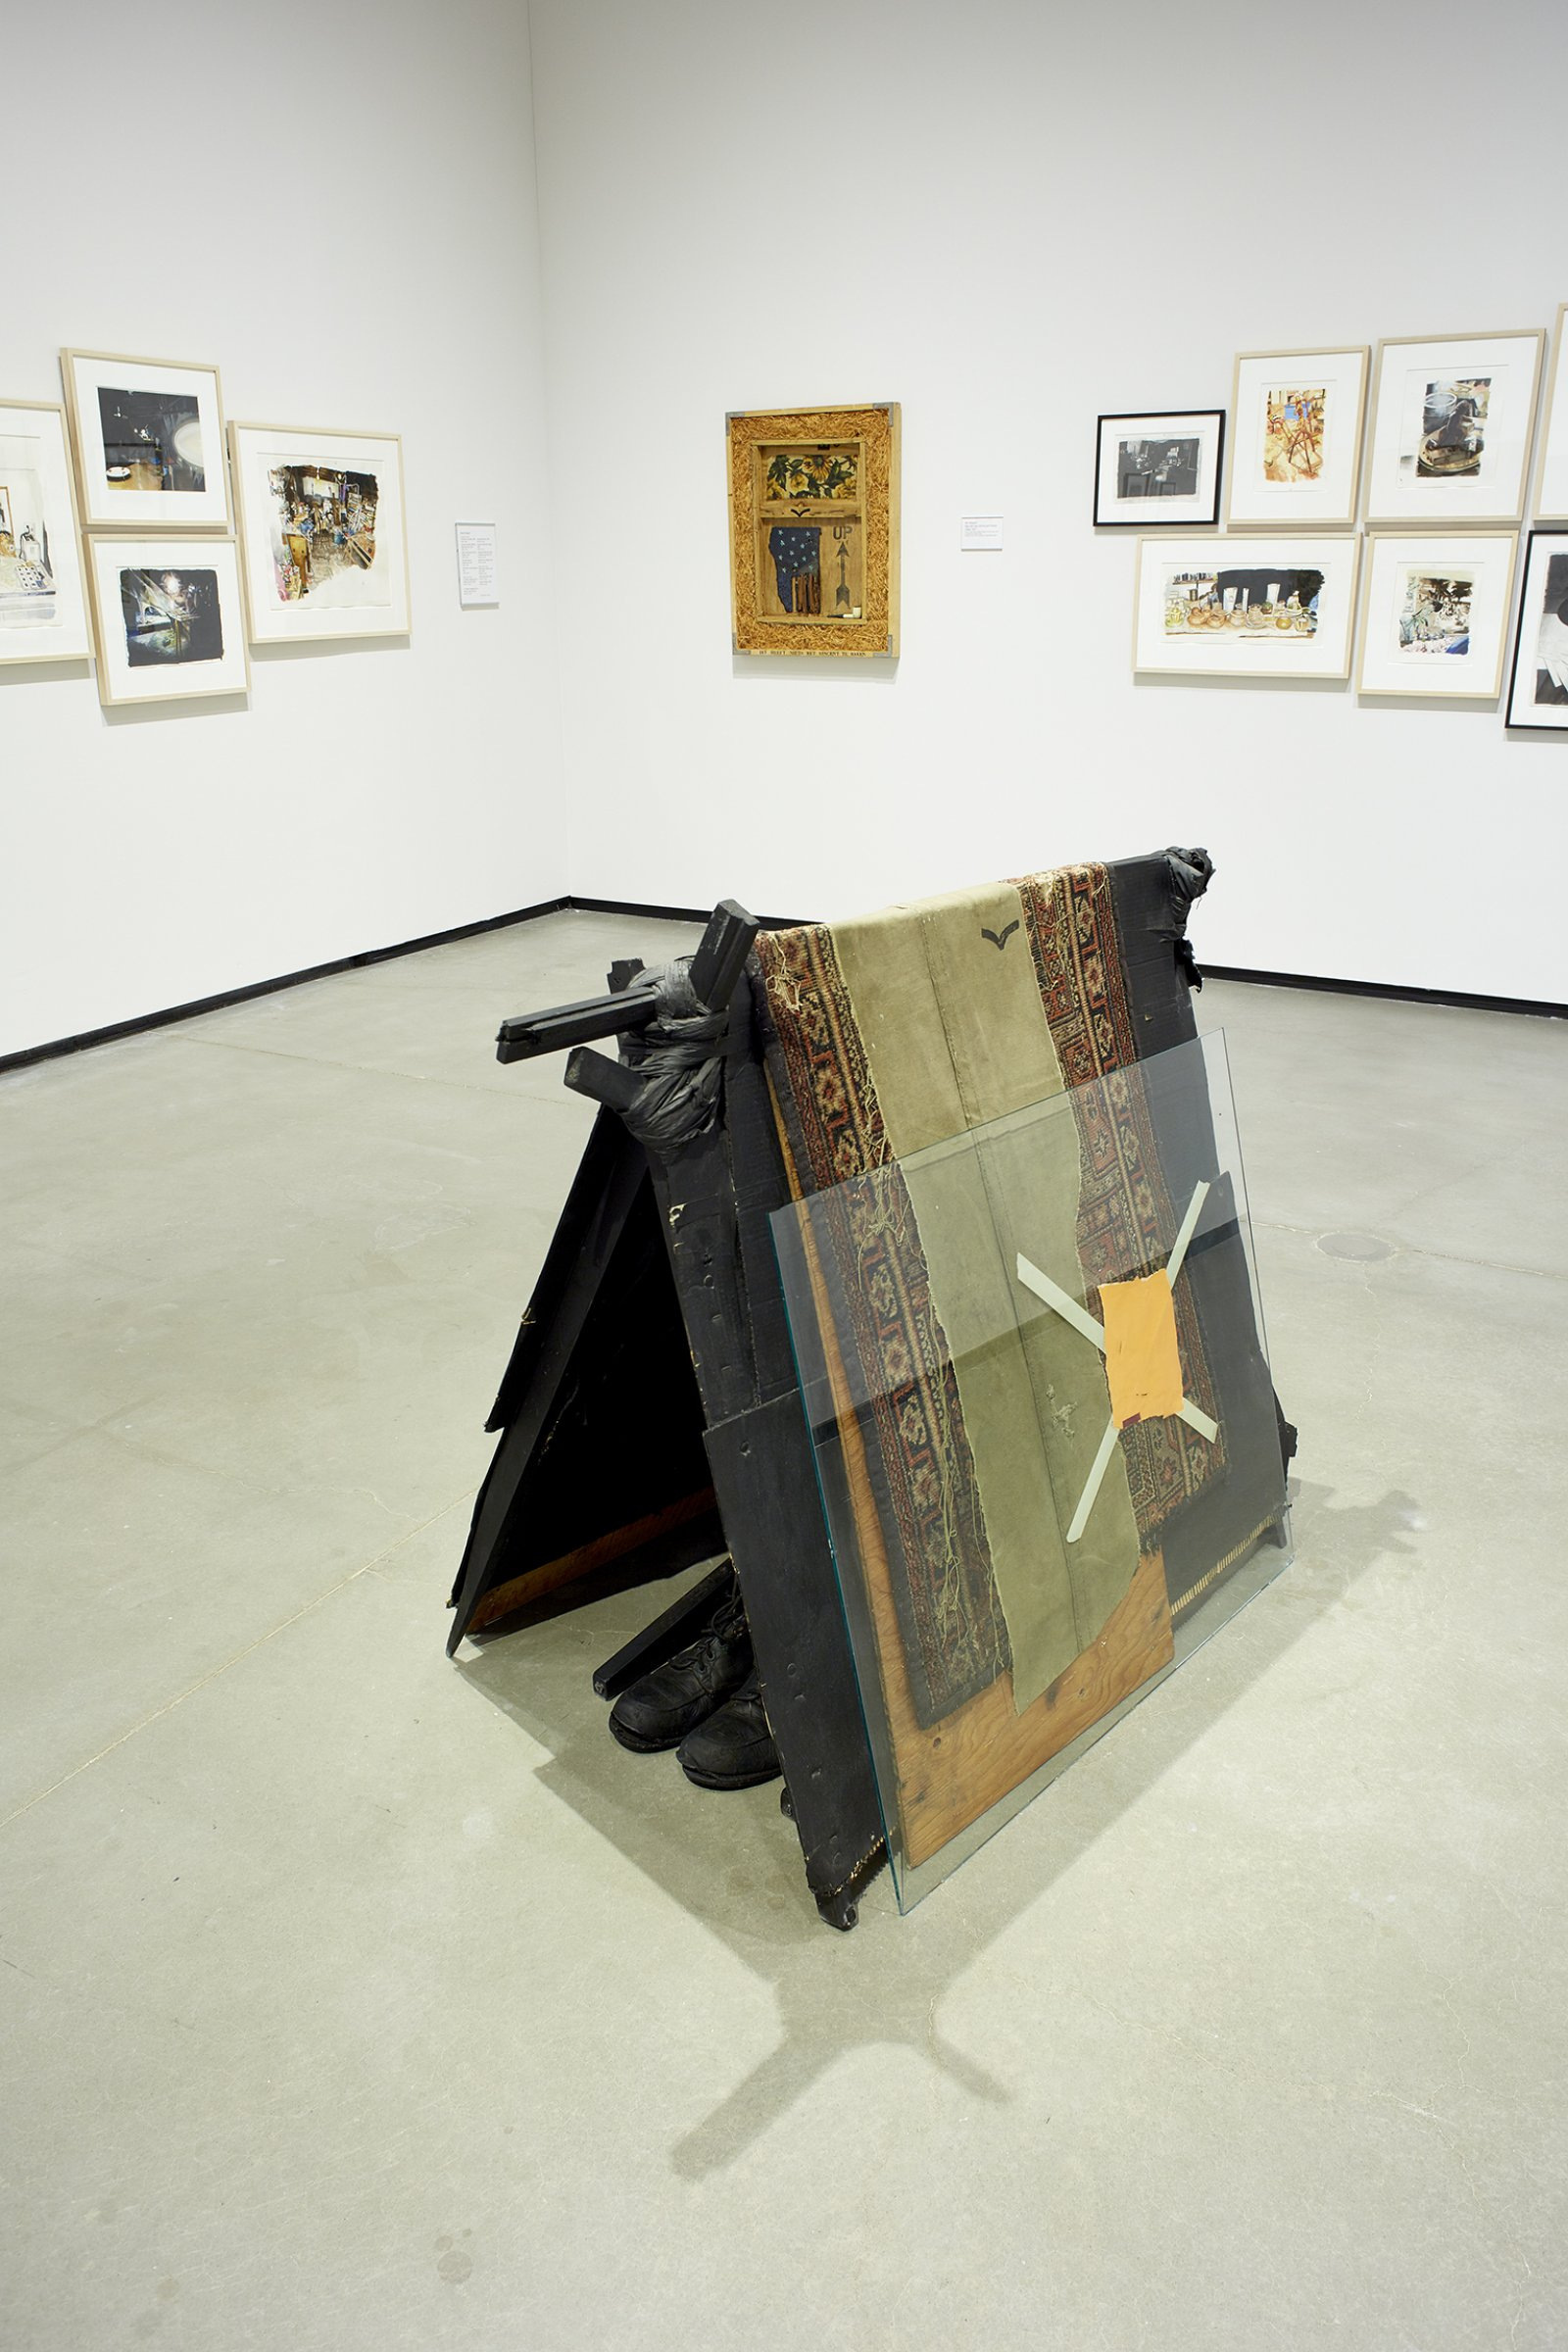 Ron Moppett, For Vincent 1977 (Shelter), 1977, mixed media, 42 x 32 x 50 in. (106 x 82 x 126 cm). Installation view, Every Story Has Two Sides, Art Gallery of Alberta, Edmonton, 2016 by Damian Moppett